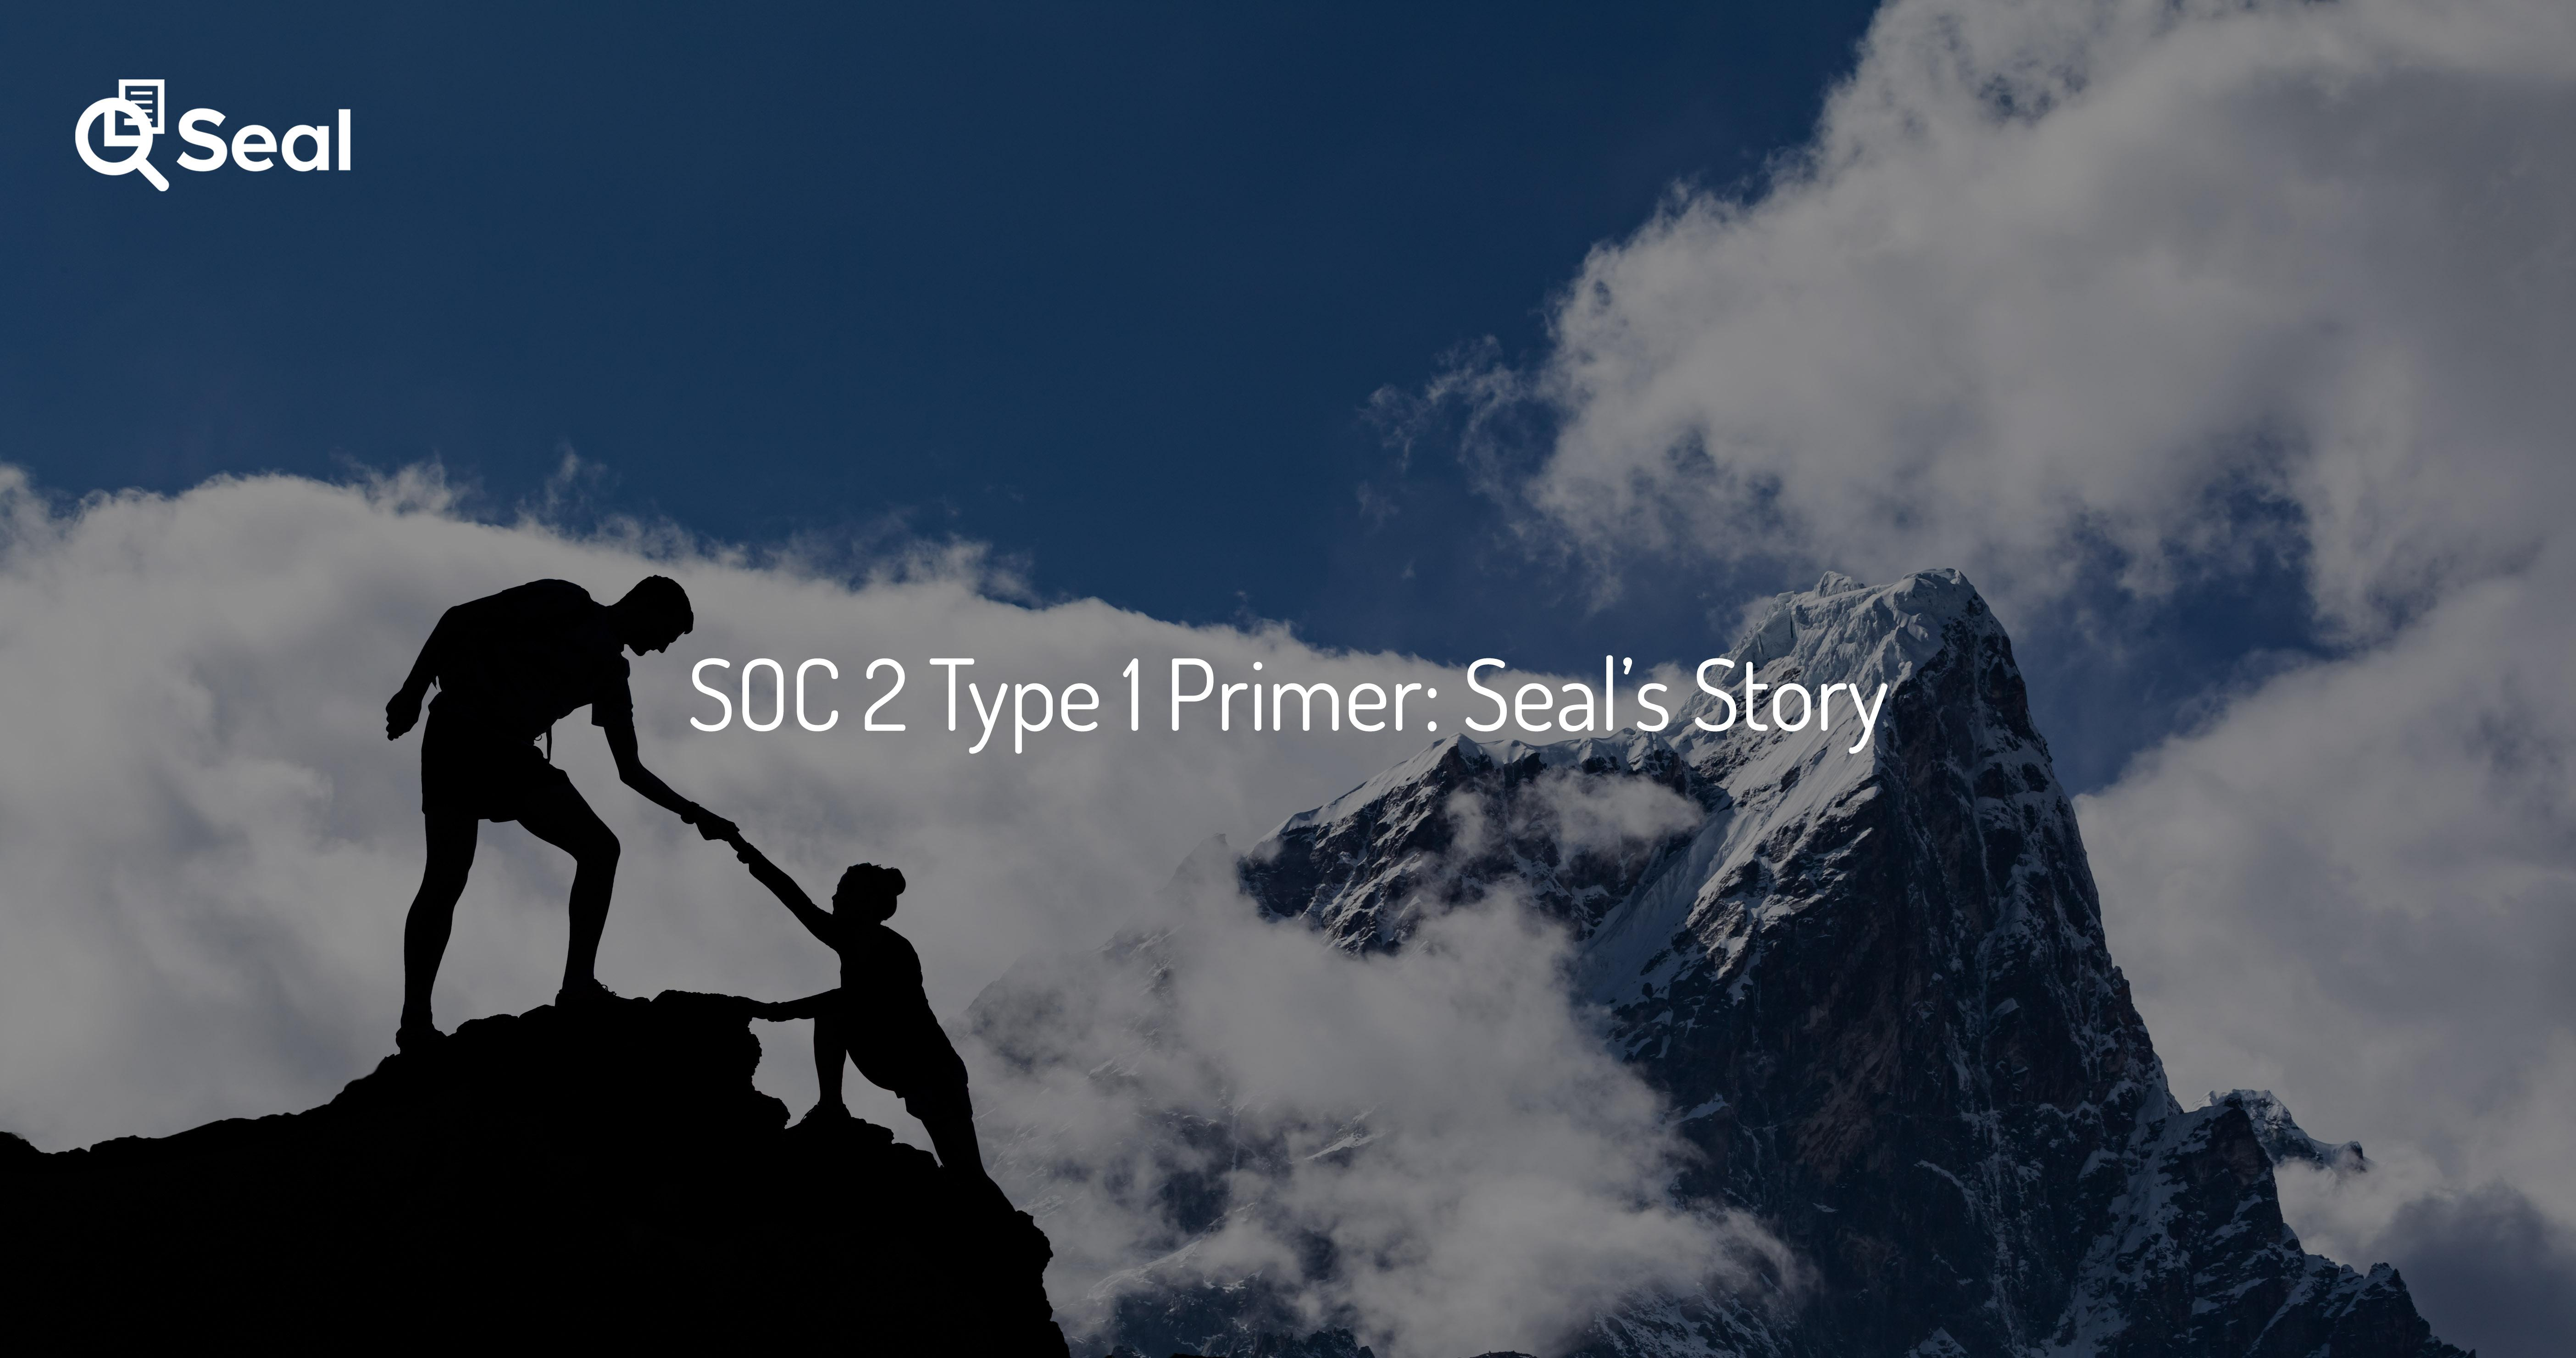 SOC 2 Type 1 Primer: Seal's Story